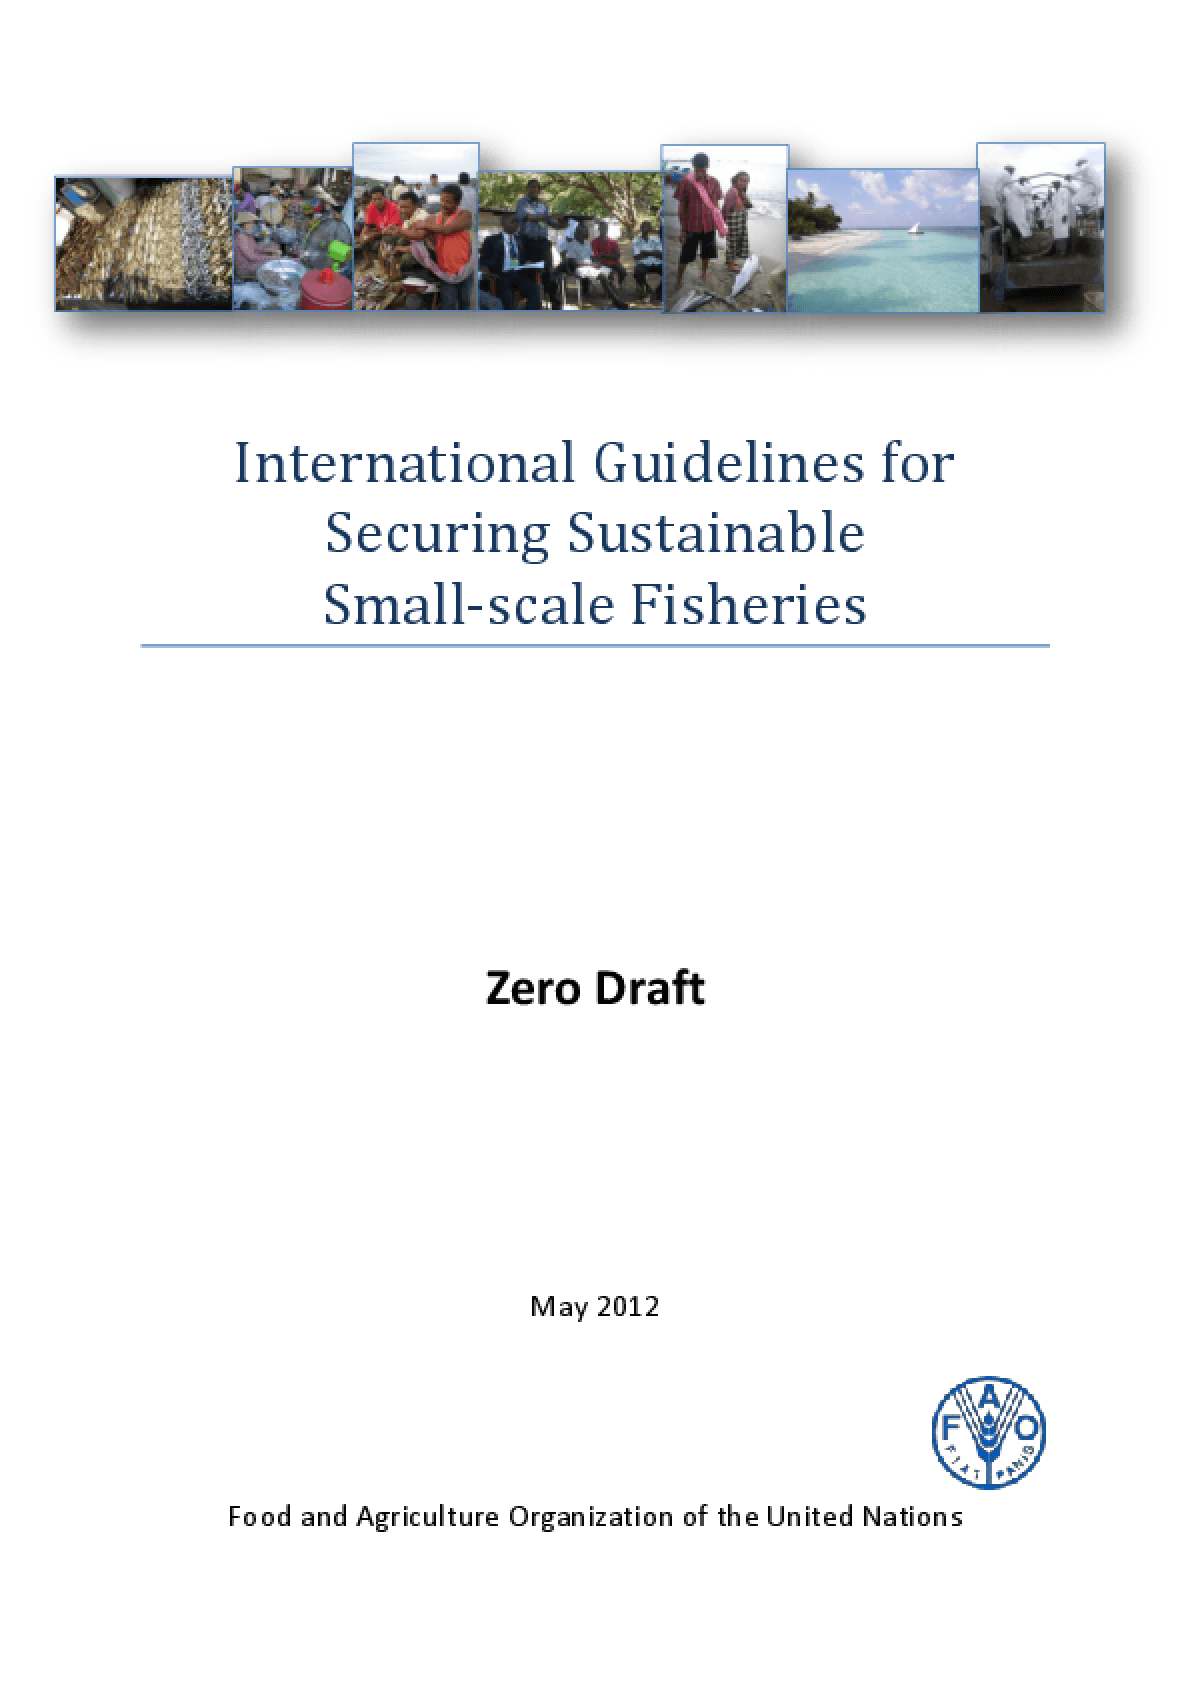 International Guidelines for Securing Sustainable Small-scale Fisheries